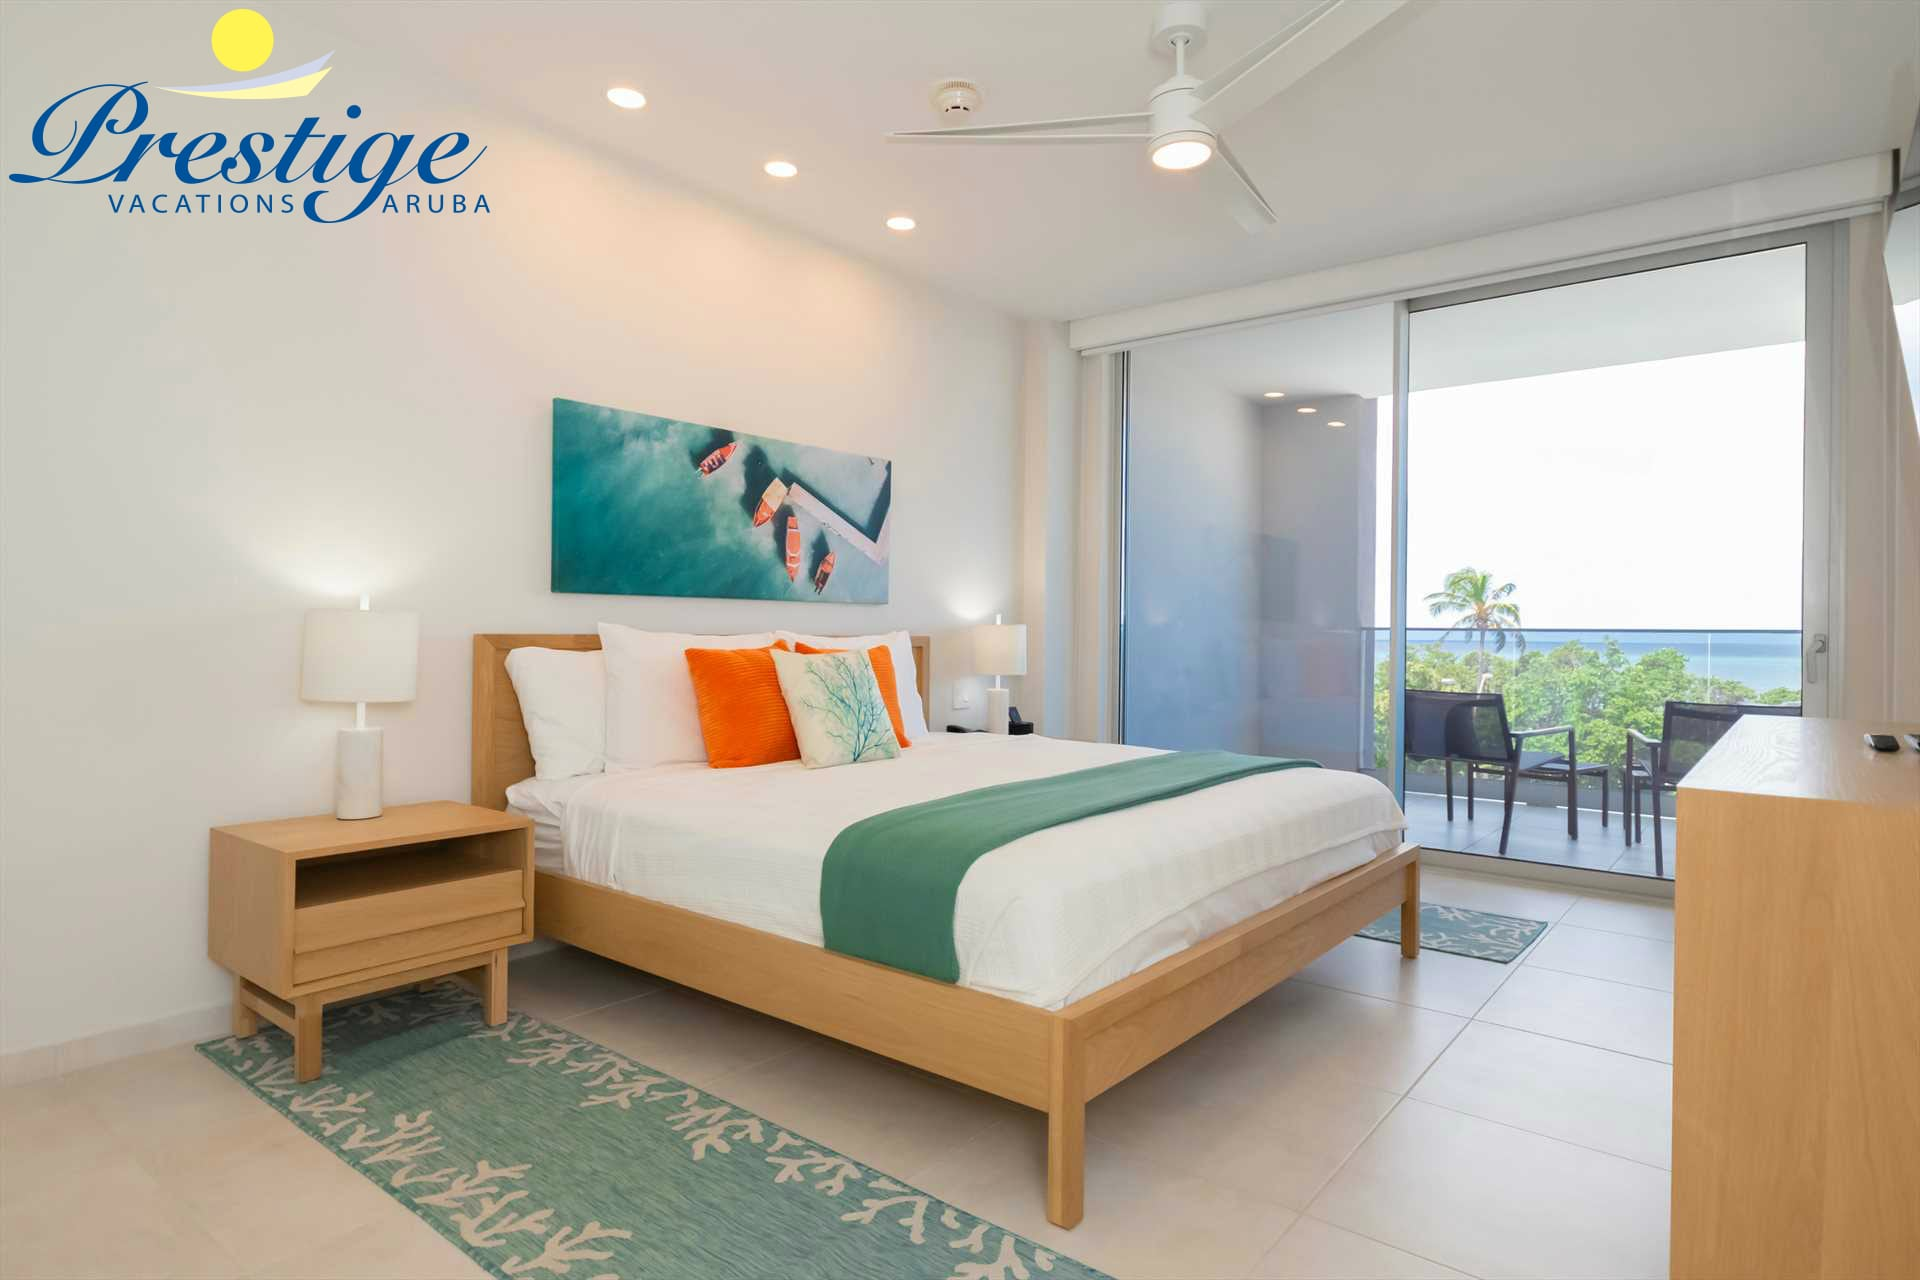 Master bedroom with king-size bed and access to the balcony with beach views